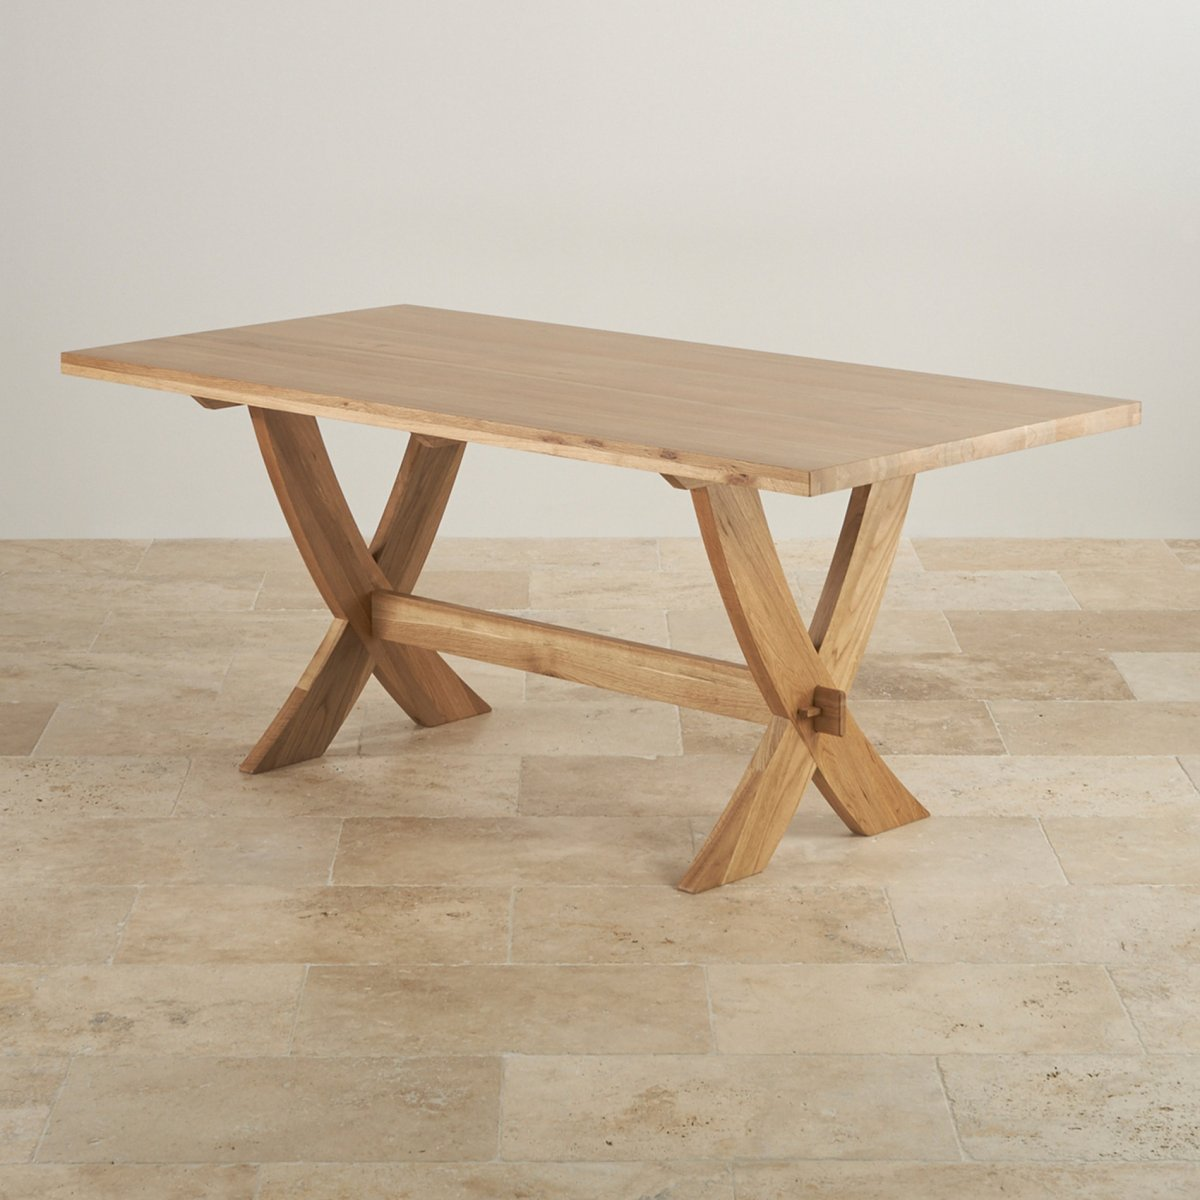 Cross Leg Dining Table Image collections Dining Table Ideas : crossley 6ft x 3ft natural solid oak crossed leg dining table 57d818d671880b227a57861ebeb50425fa47c61540966 from sorahana.info size 1200 x 1200 jpeg 142kB